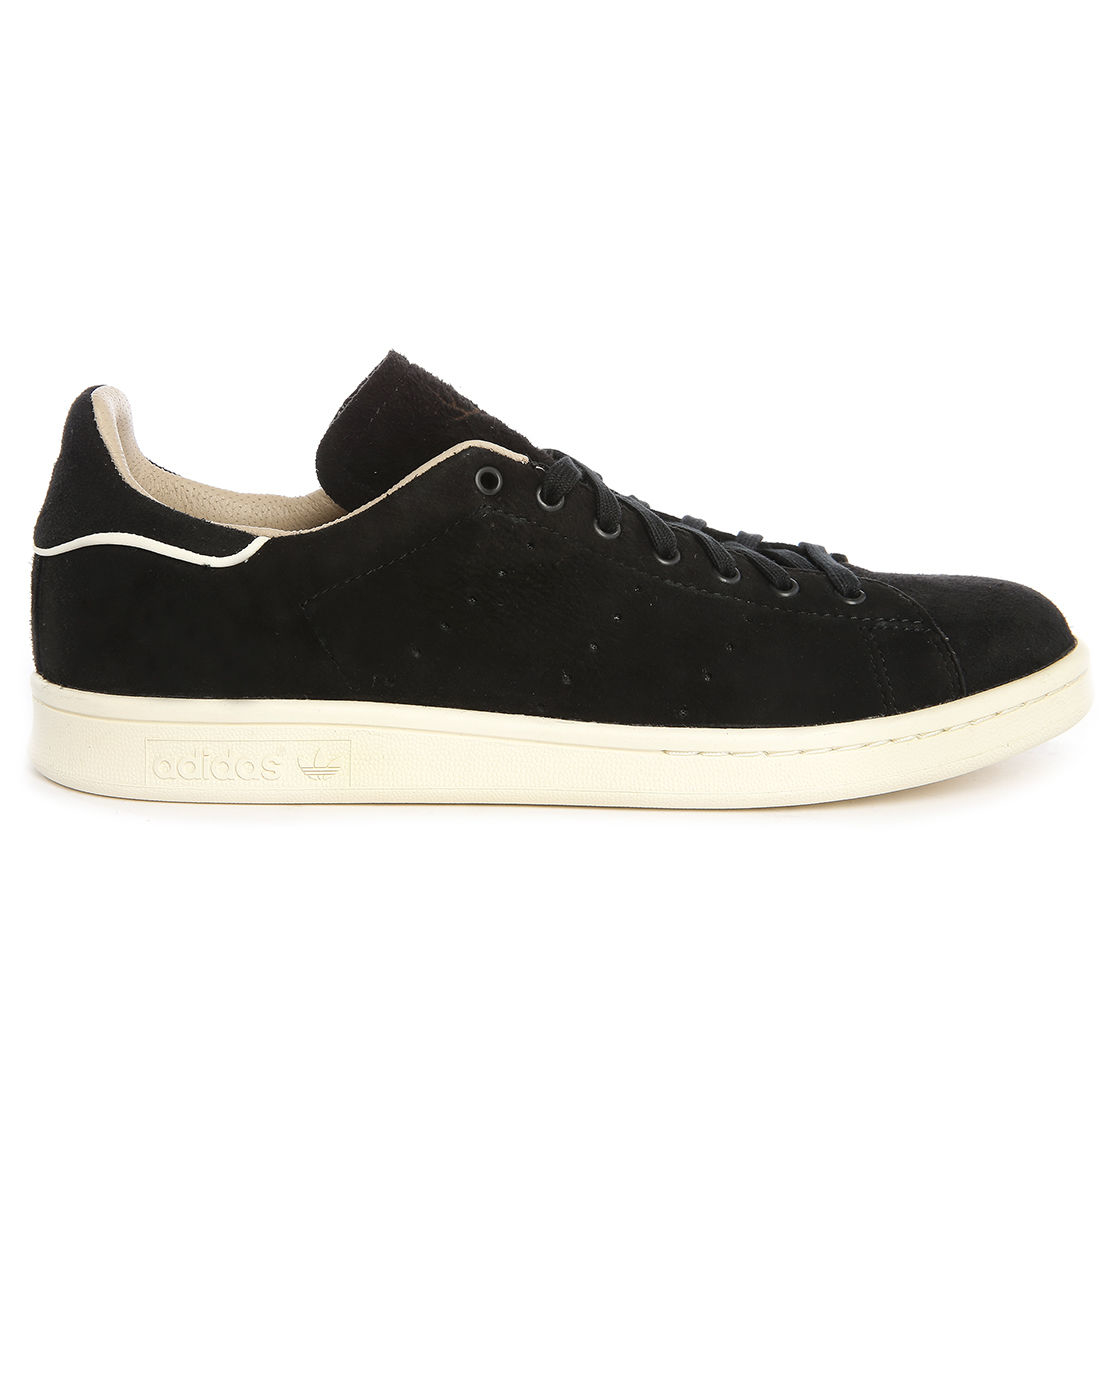 adidas originals stan smith made in germany black sneakers in black for men lyst. Black Bedroom Furniture Sets. Home Design Ideas